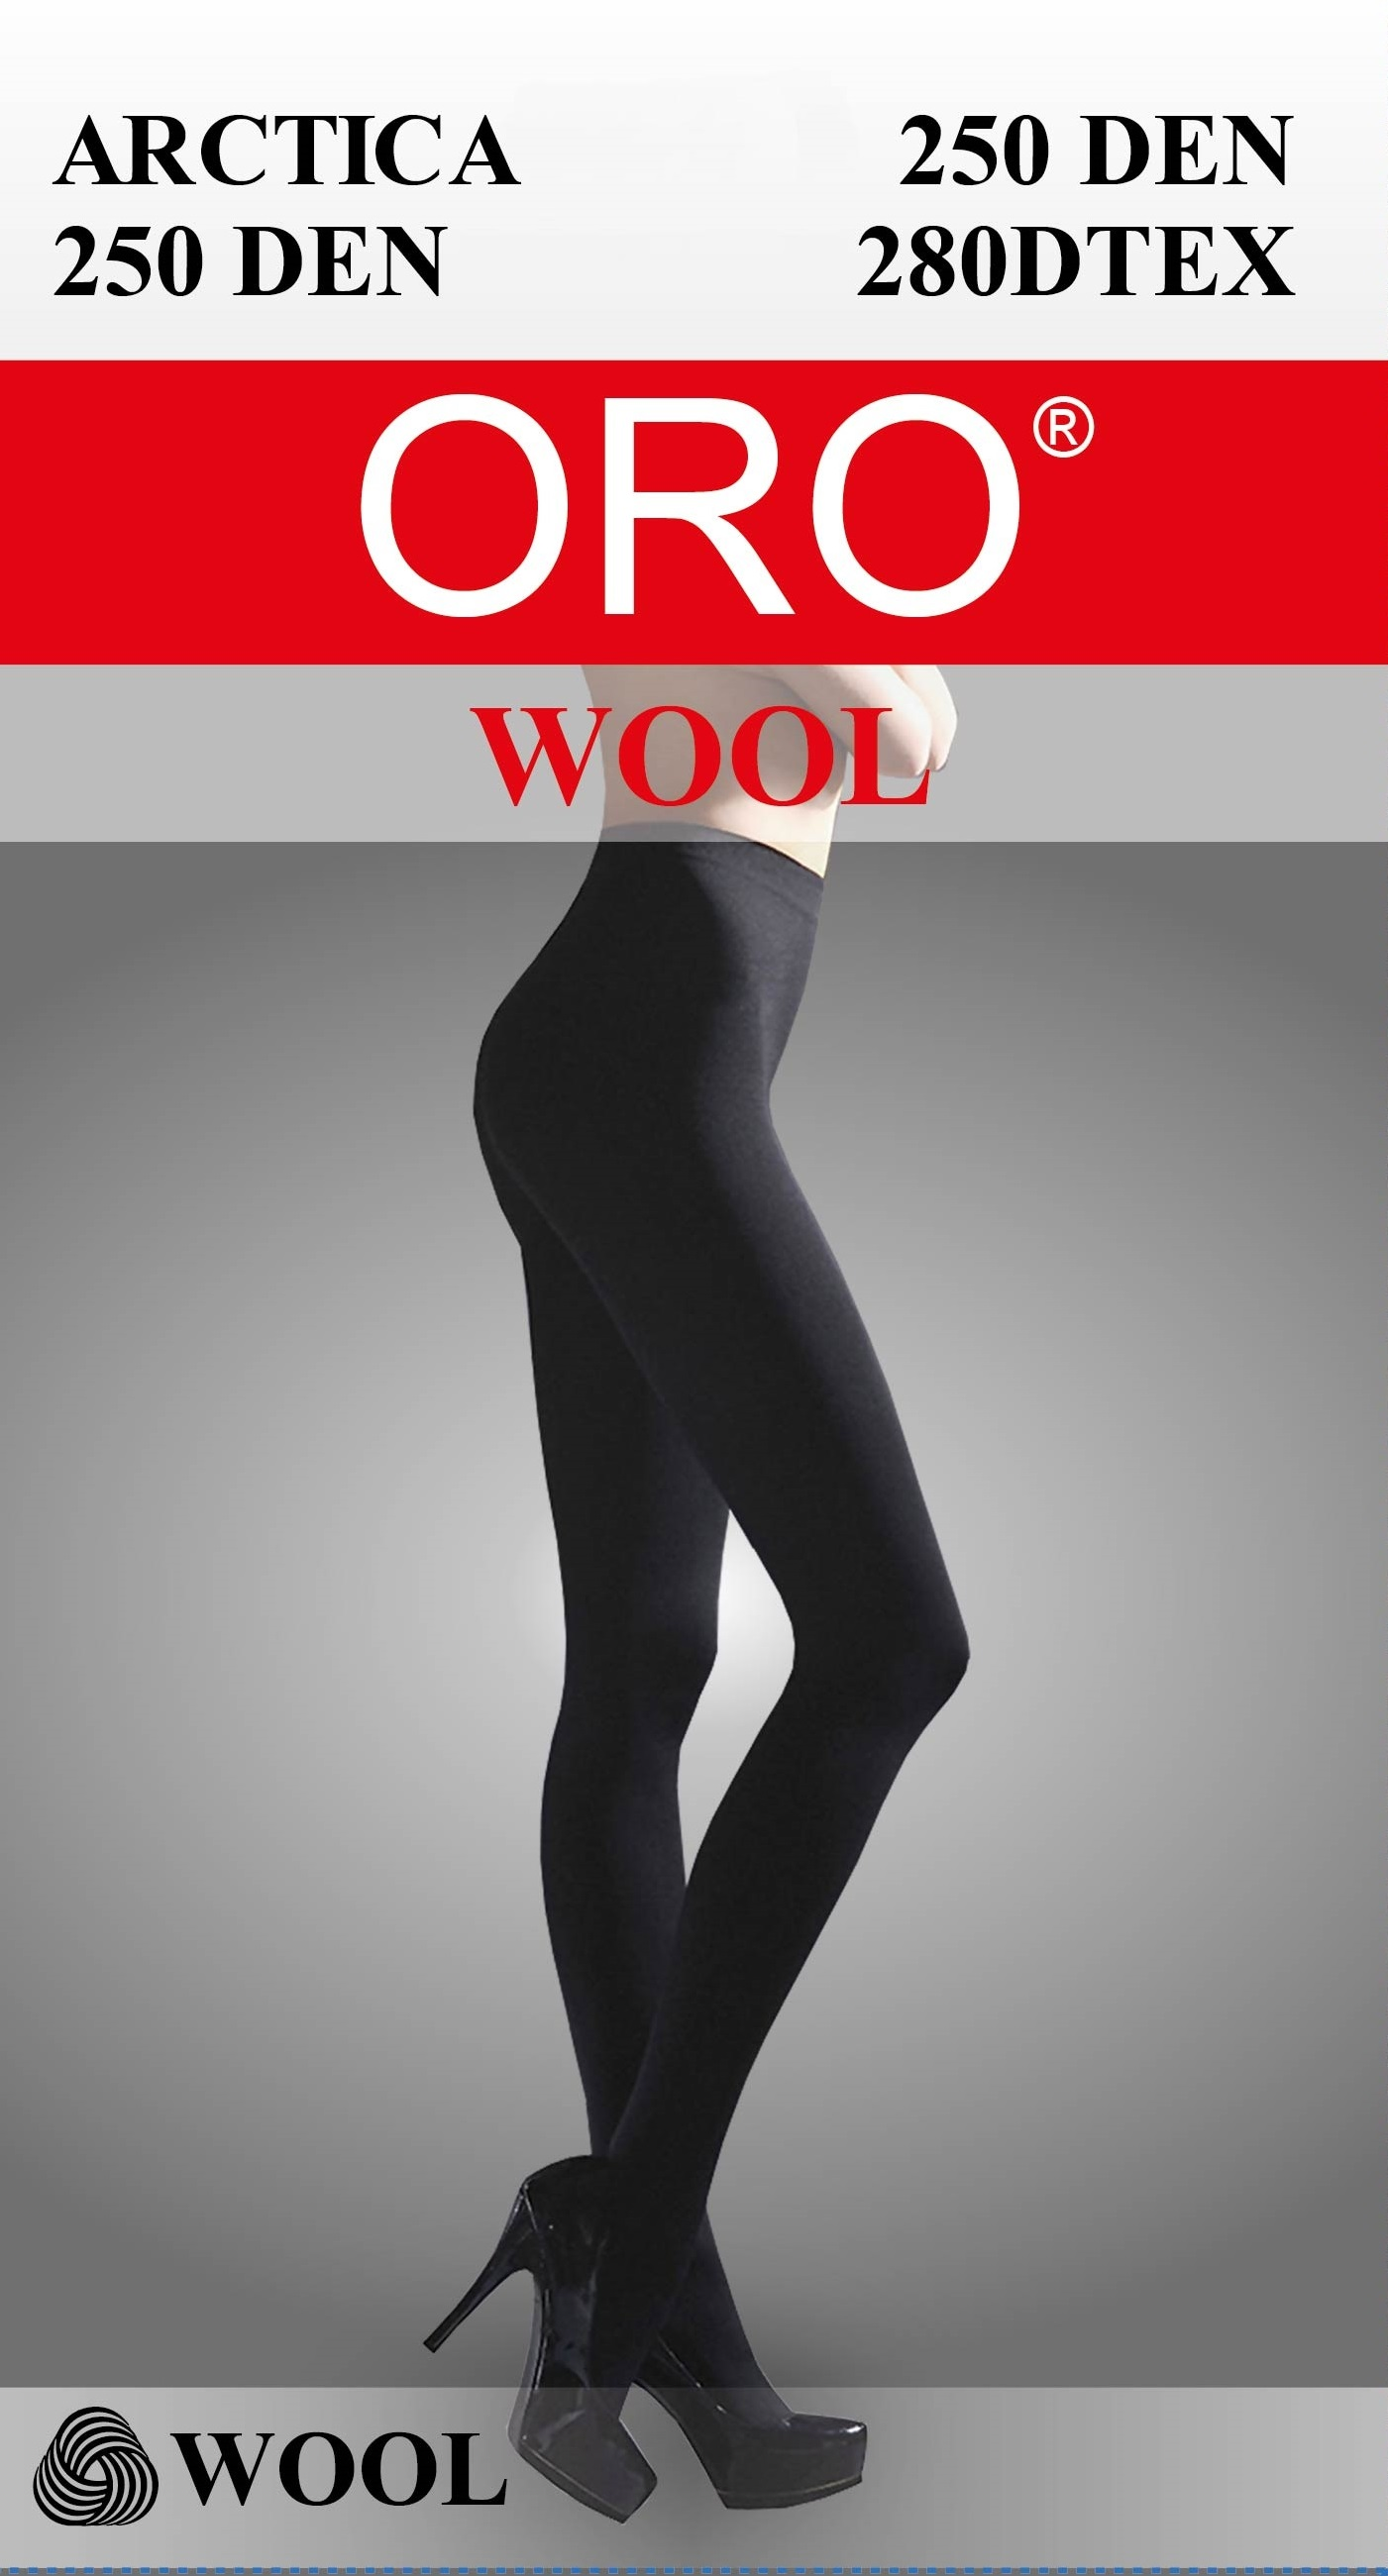 https://golden-legs.com.ua/images/stories/virtuemart/product/250WOOL (1).jpg